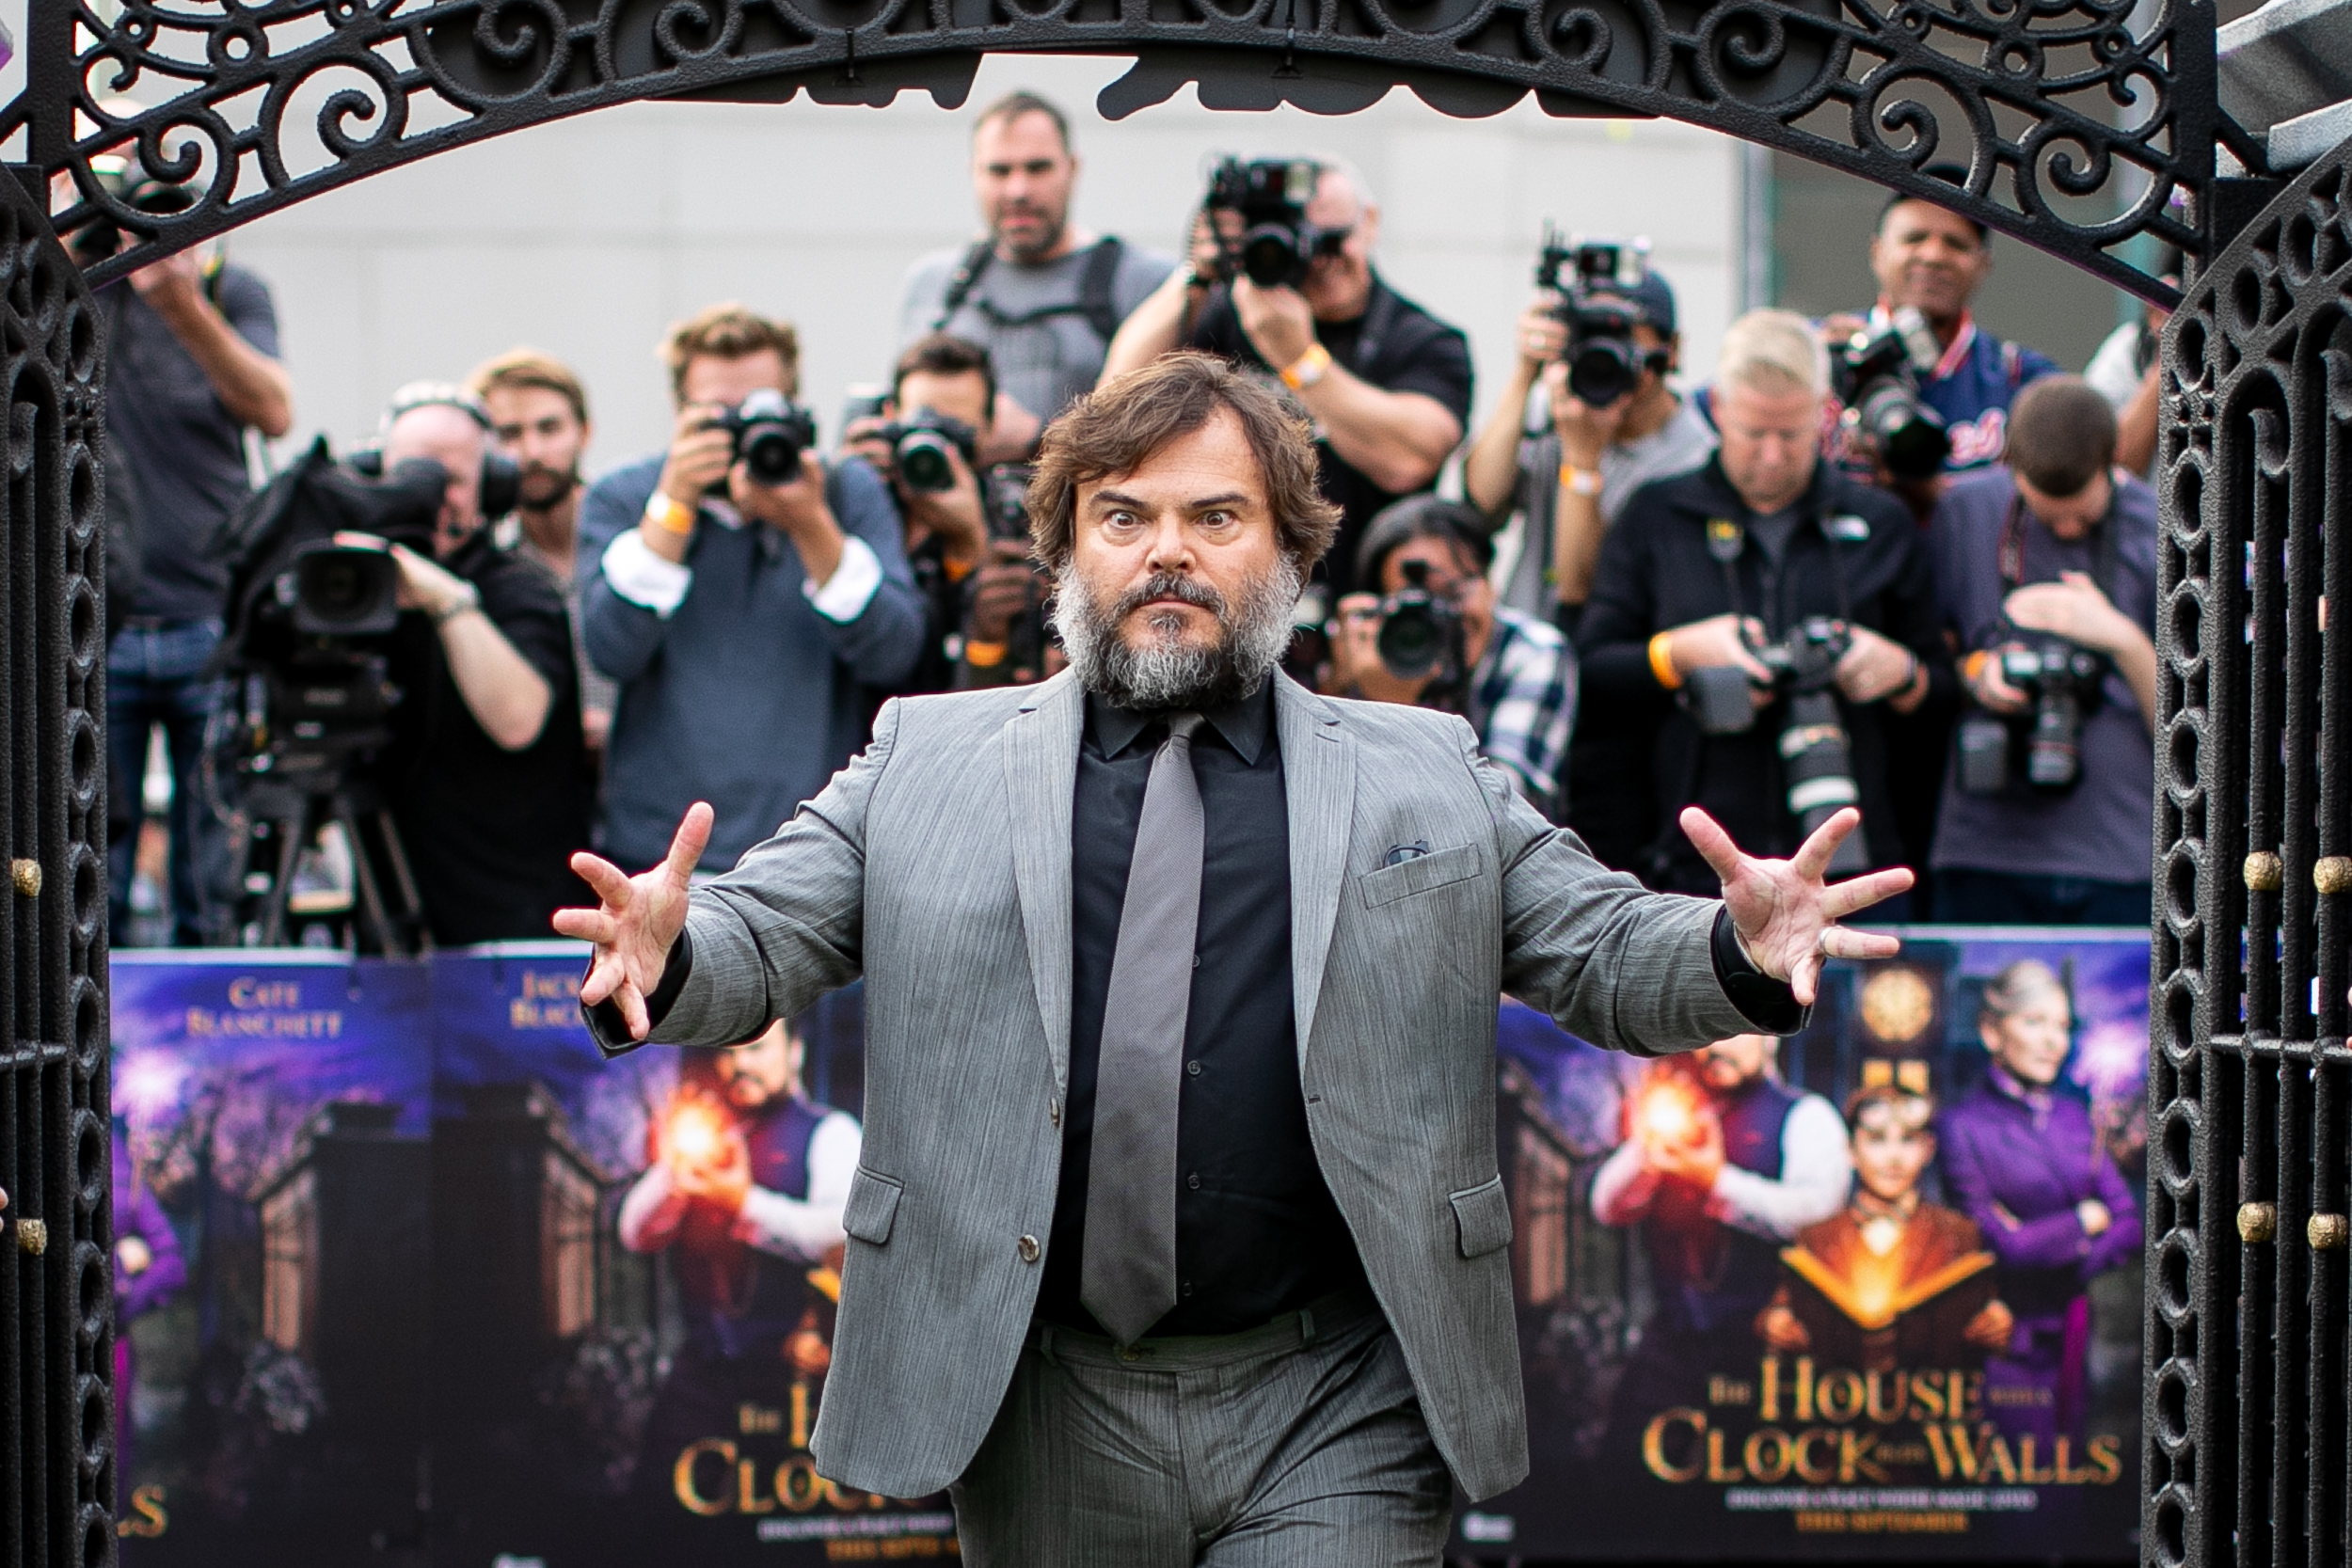 Jack Black arrives at 'The House with a Clock in its Walls' World Premiere at Westfield London. September 2018 -London, UK.